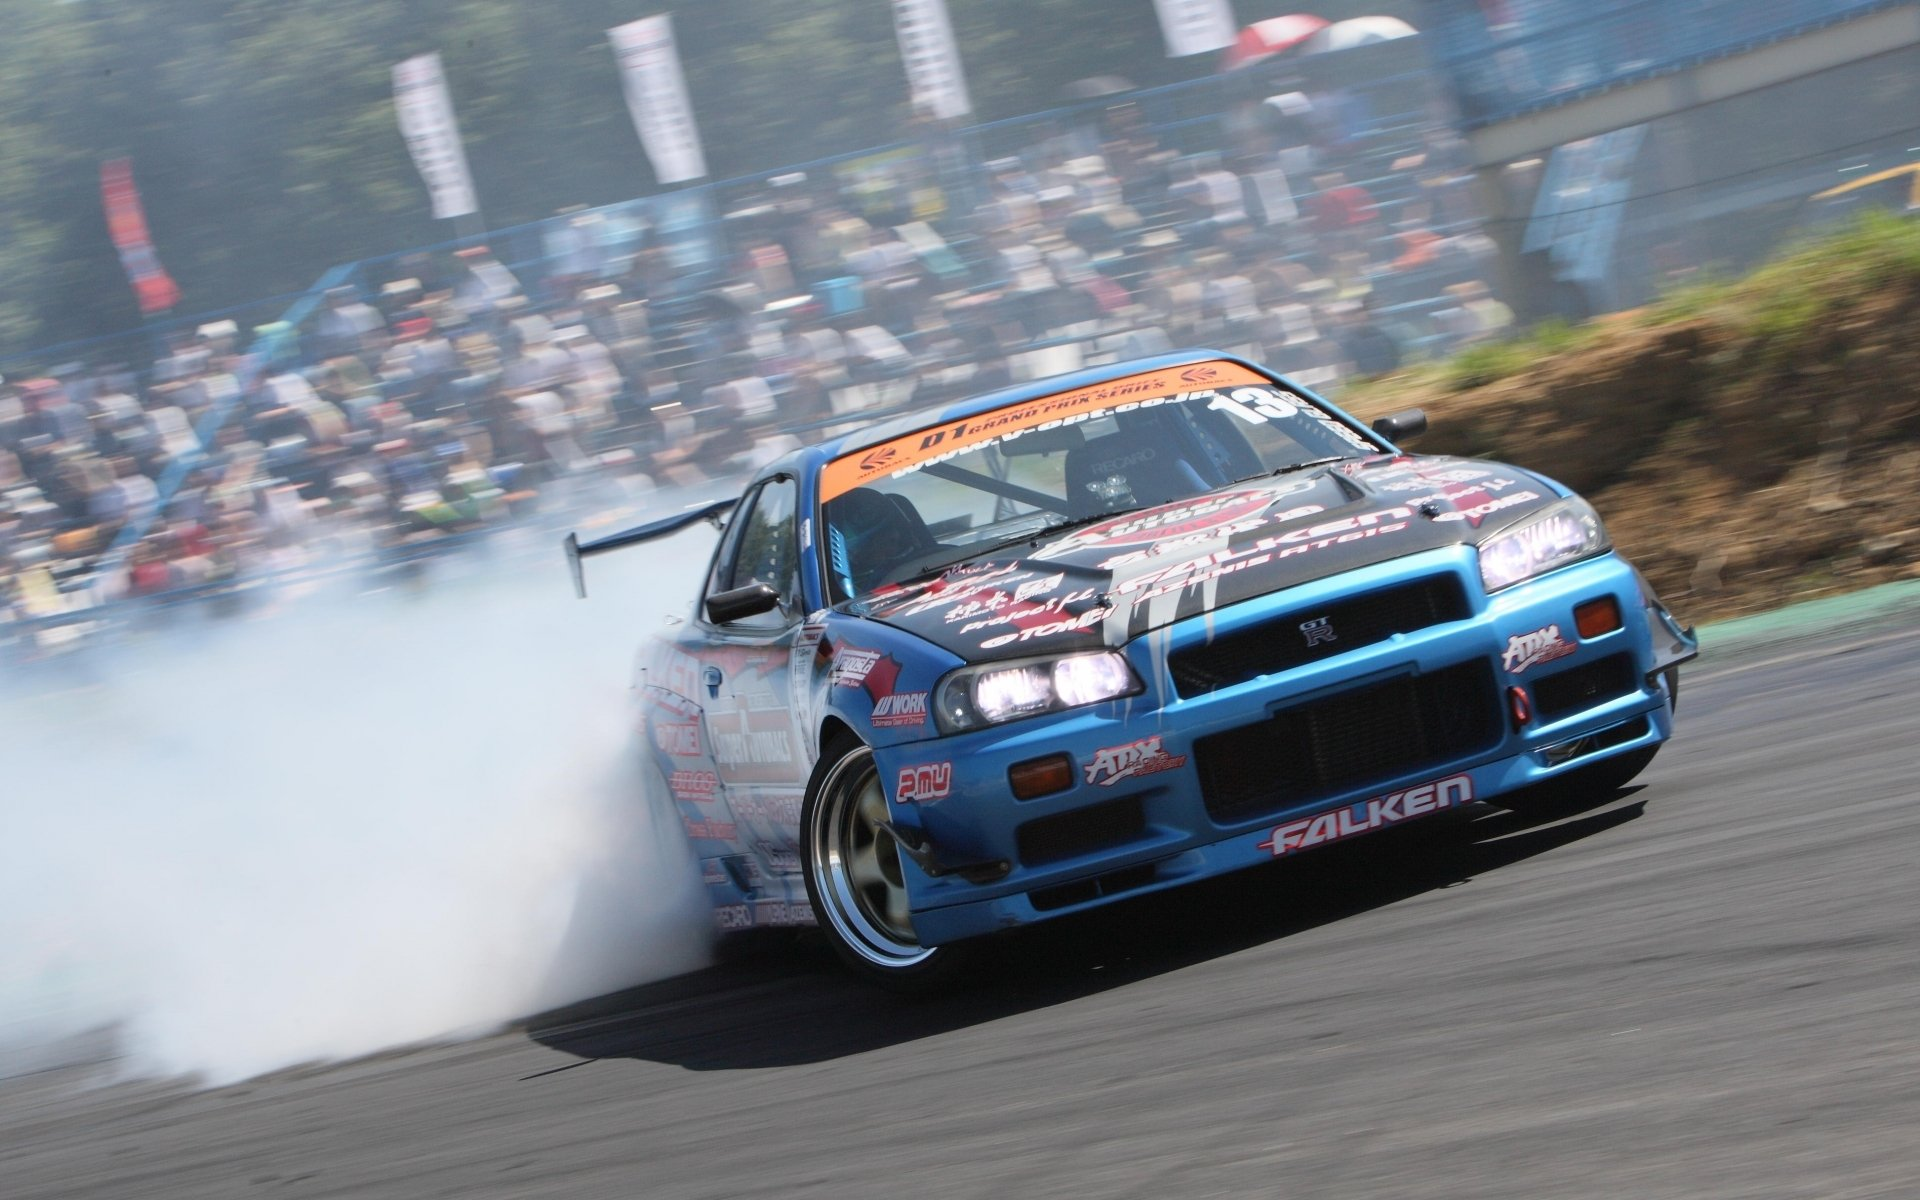 86 Drift Hd Wallpapers Background Images Wallpaper Abyss